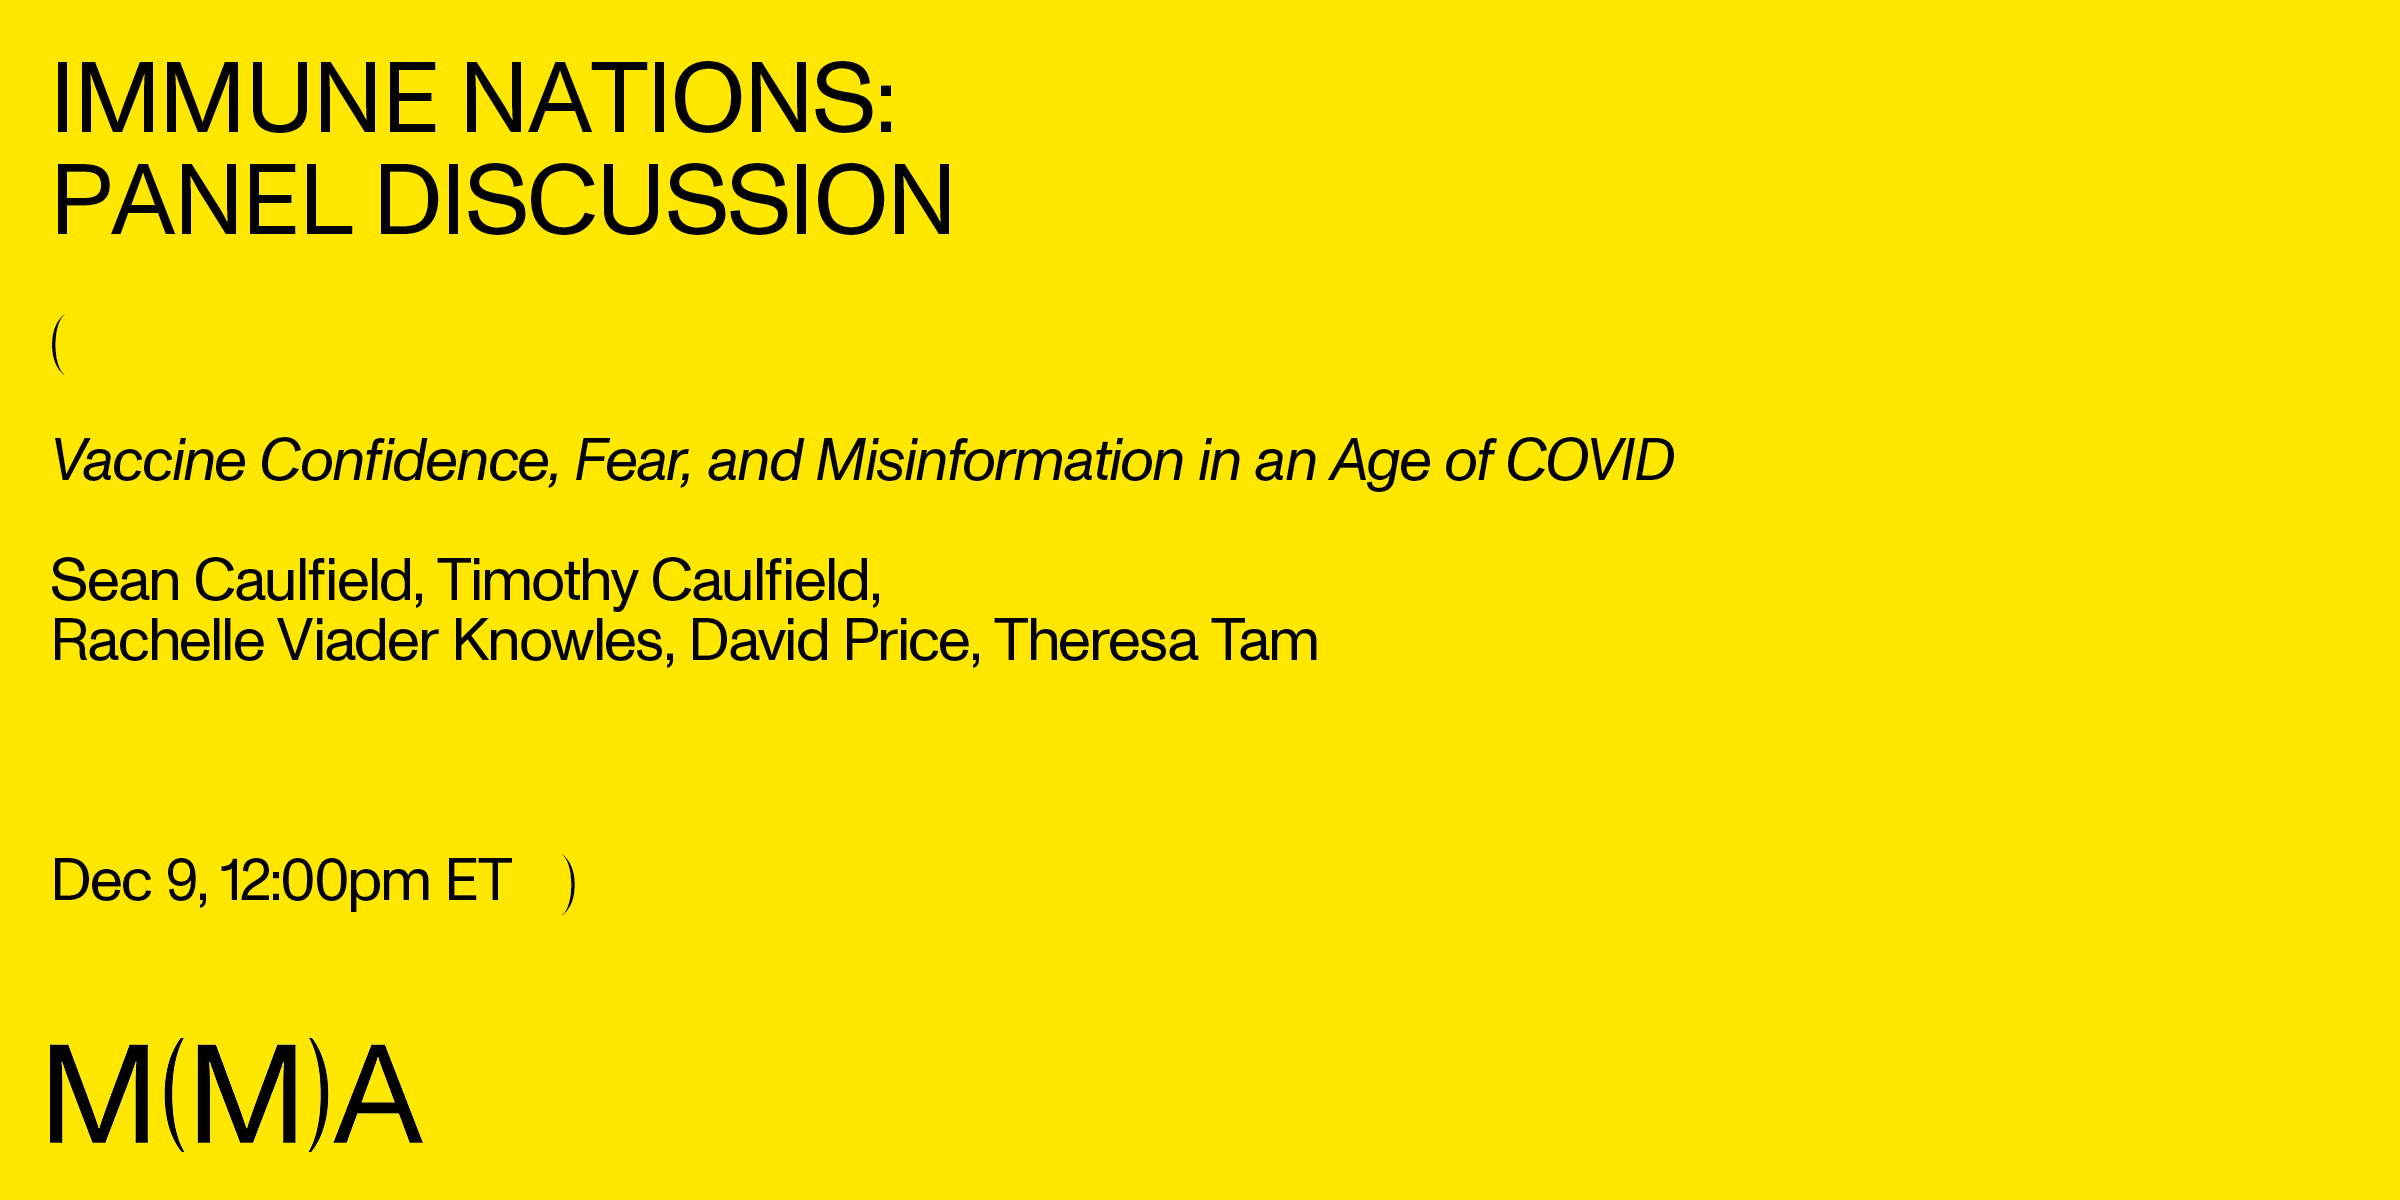 Vaccine Confidence, Fear, and Misinformation in an Age of COVID